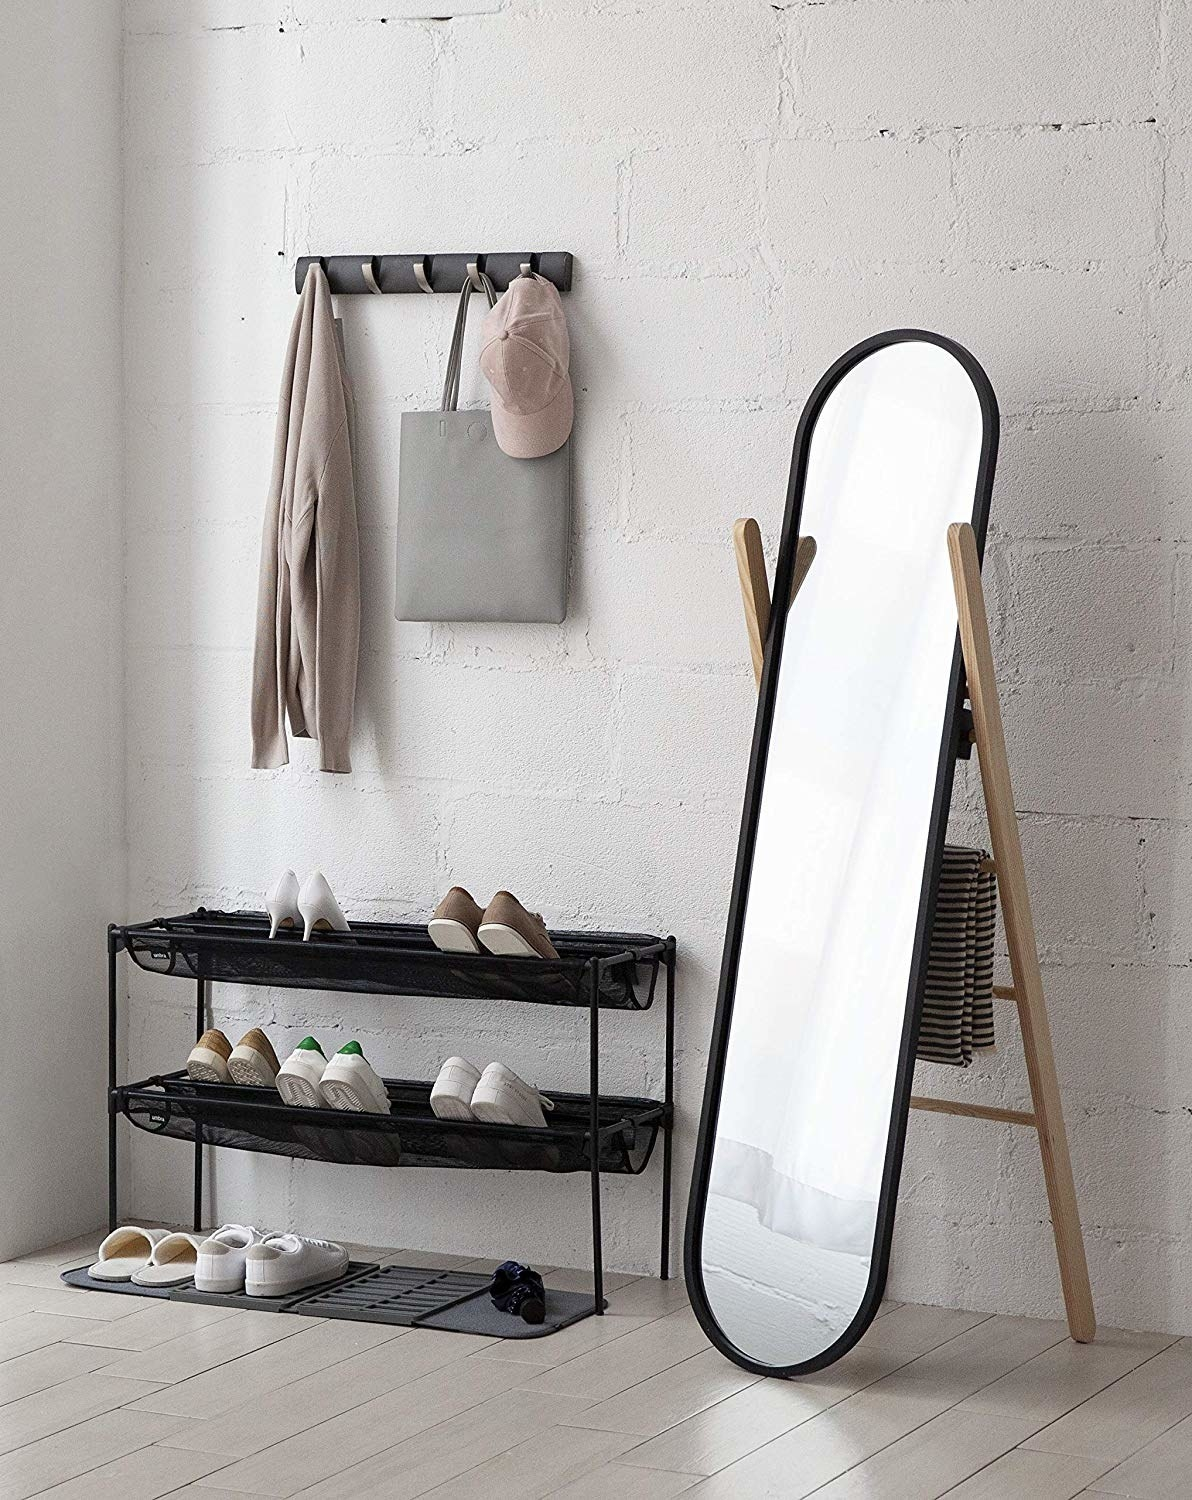 The floor length mirror near an entryway propped next to a shoe rack and wall hook